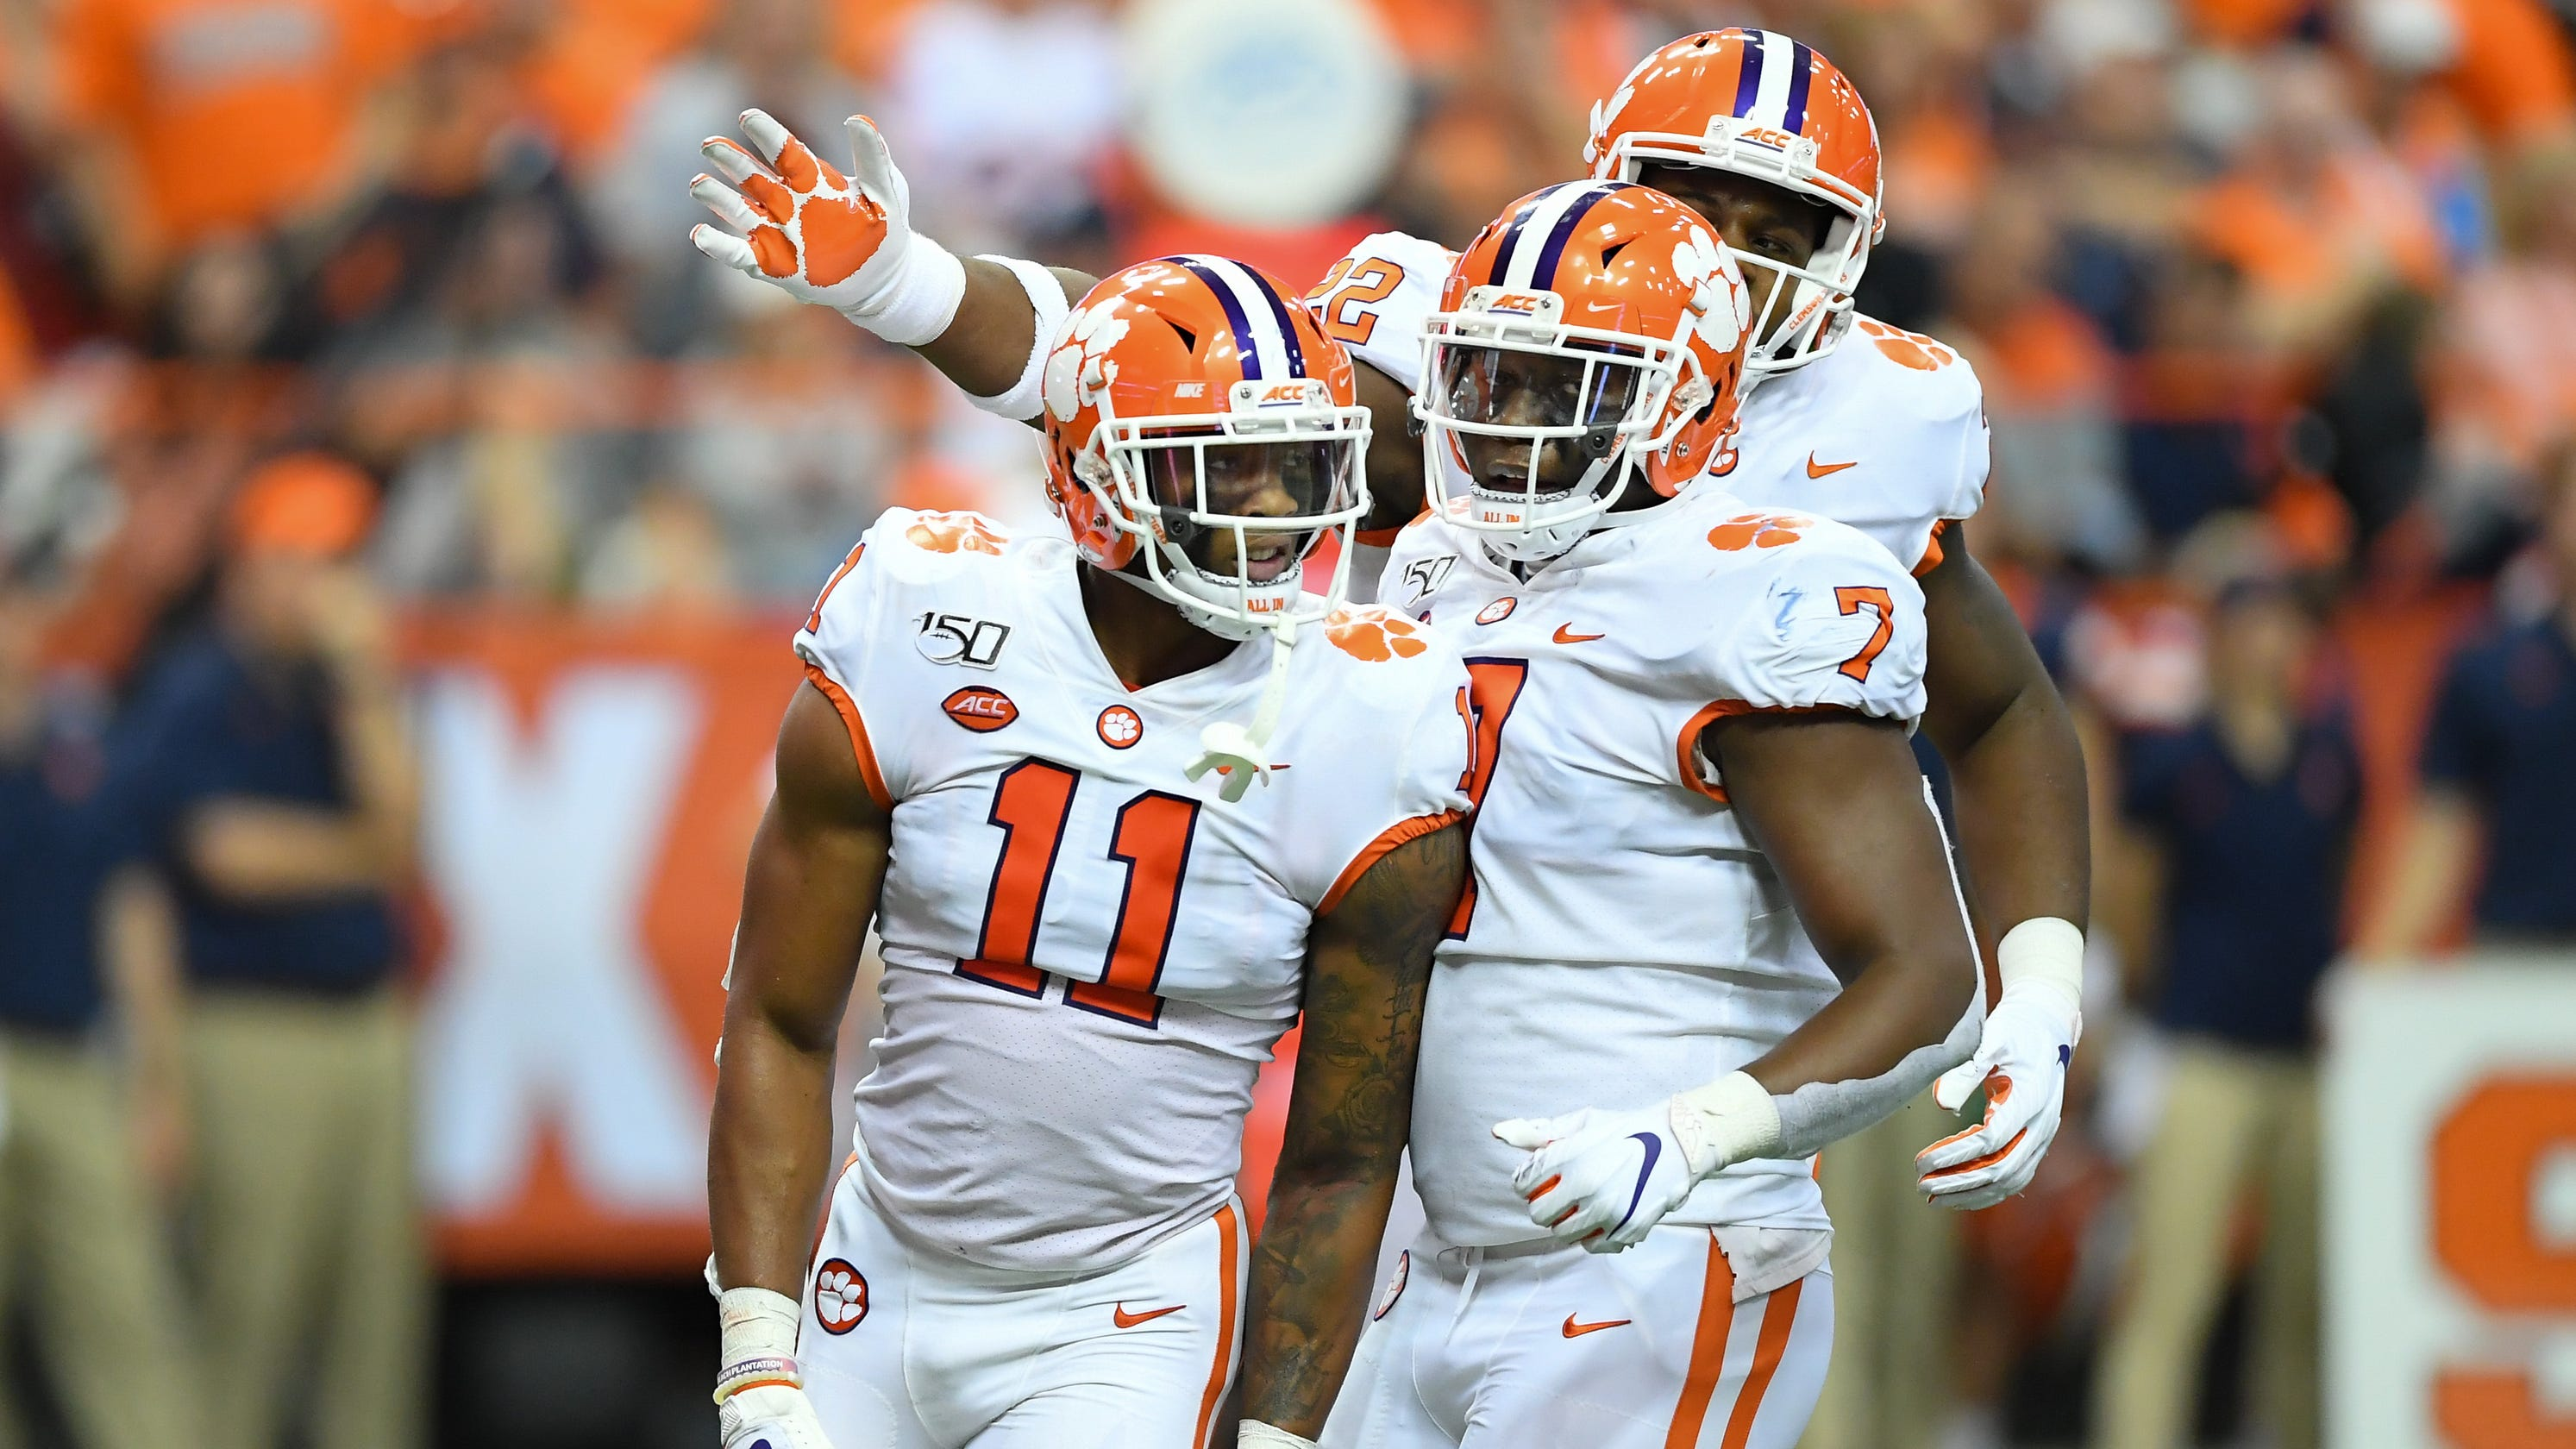 official photos 35b0c 047d7 College football: Clemson still team to beat for national ...